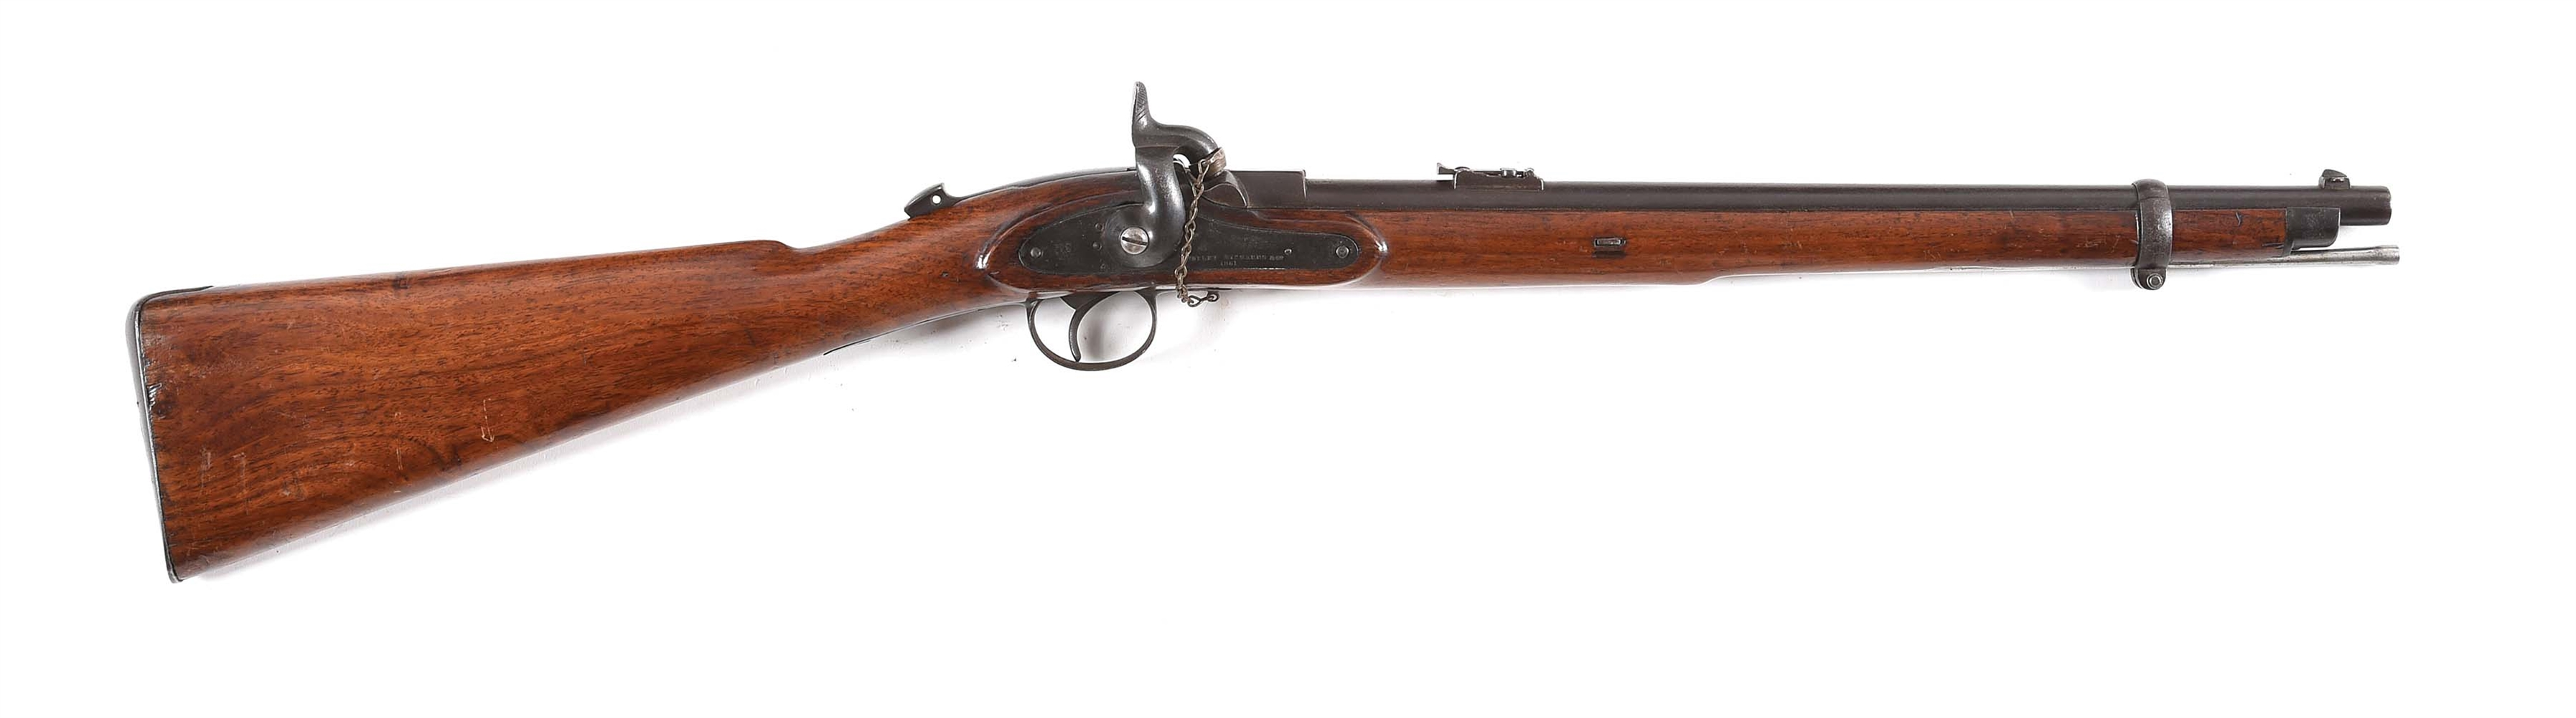 (A) WESTLEY RICHARDS MONKEY TAIL PERCUSSION RIFLE.